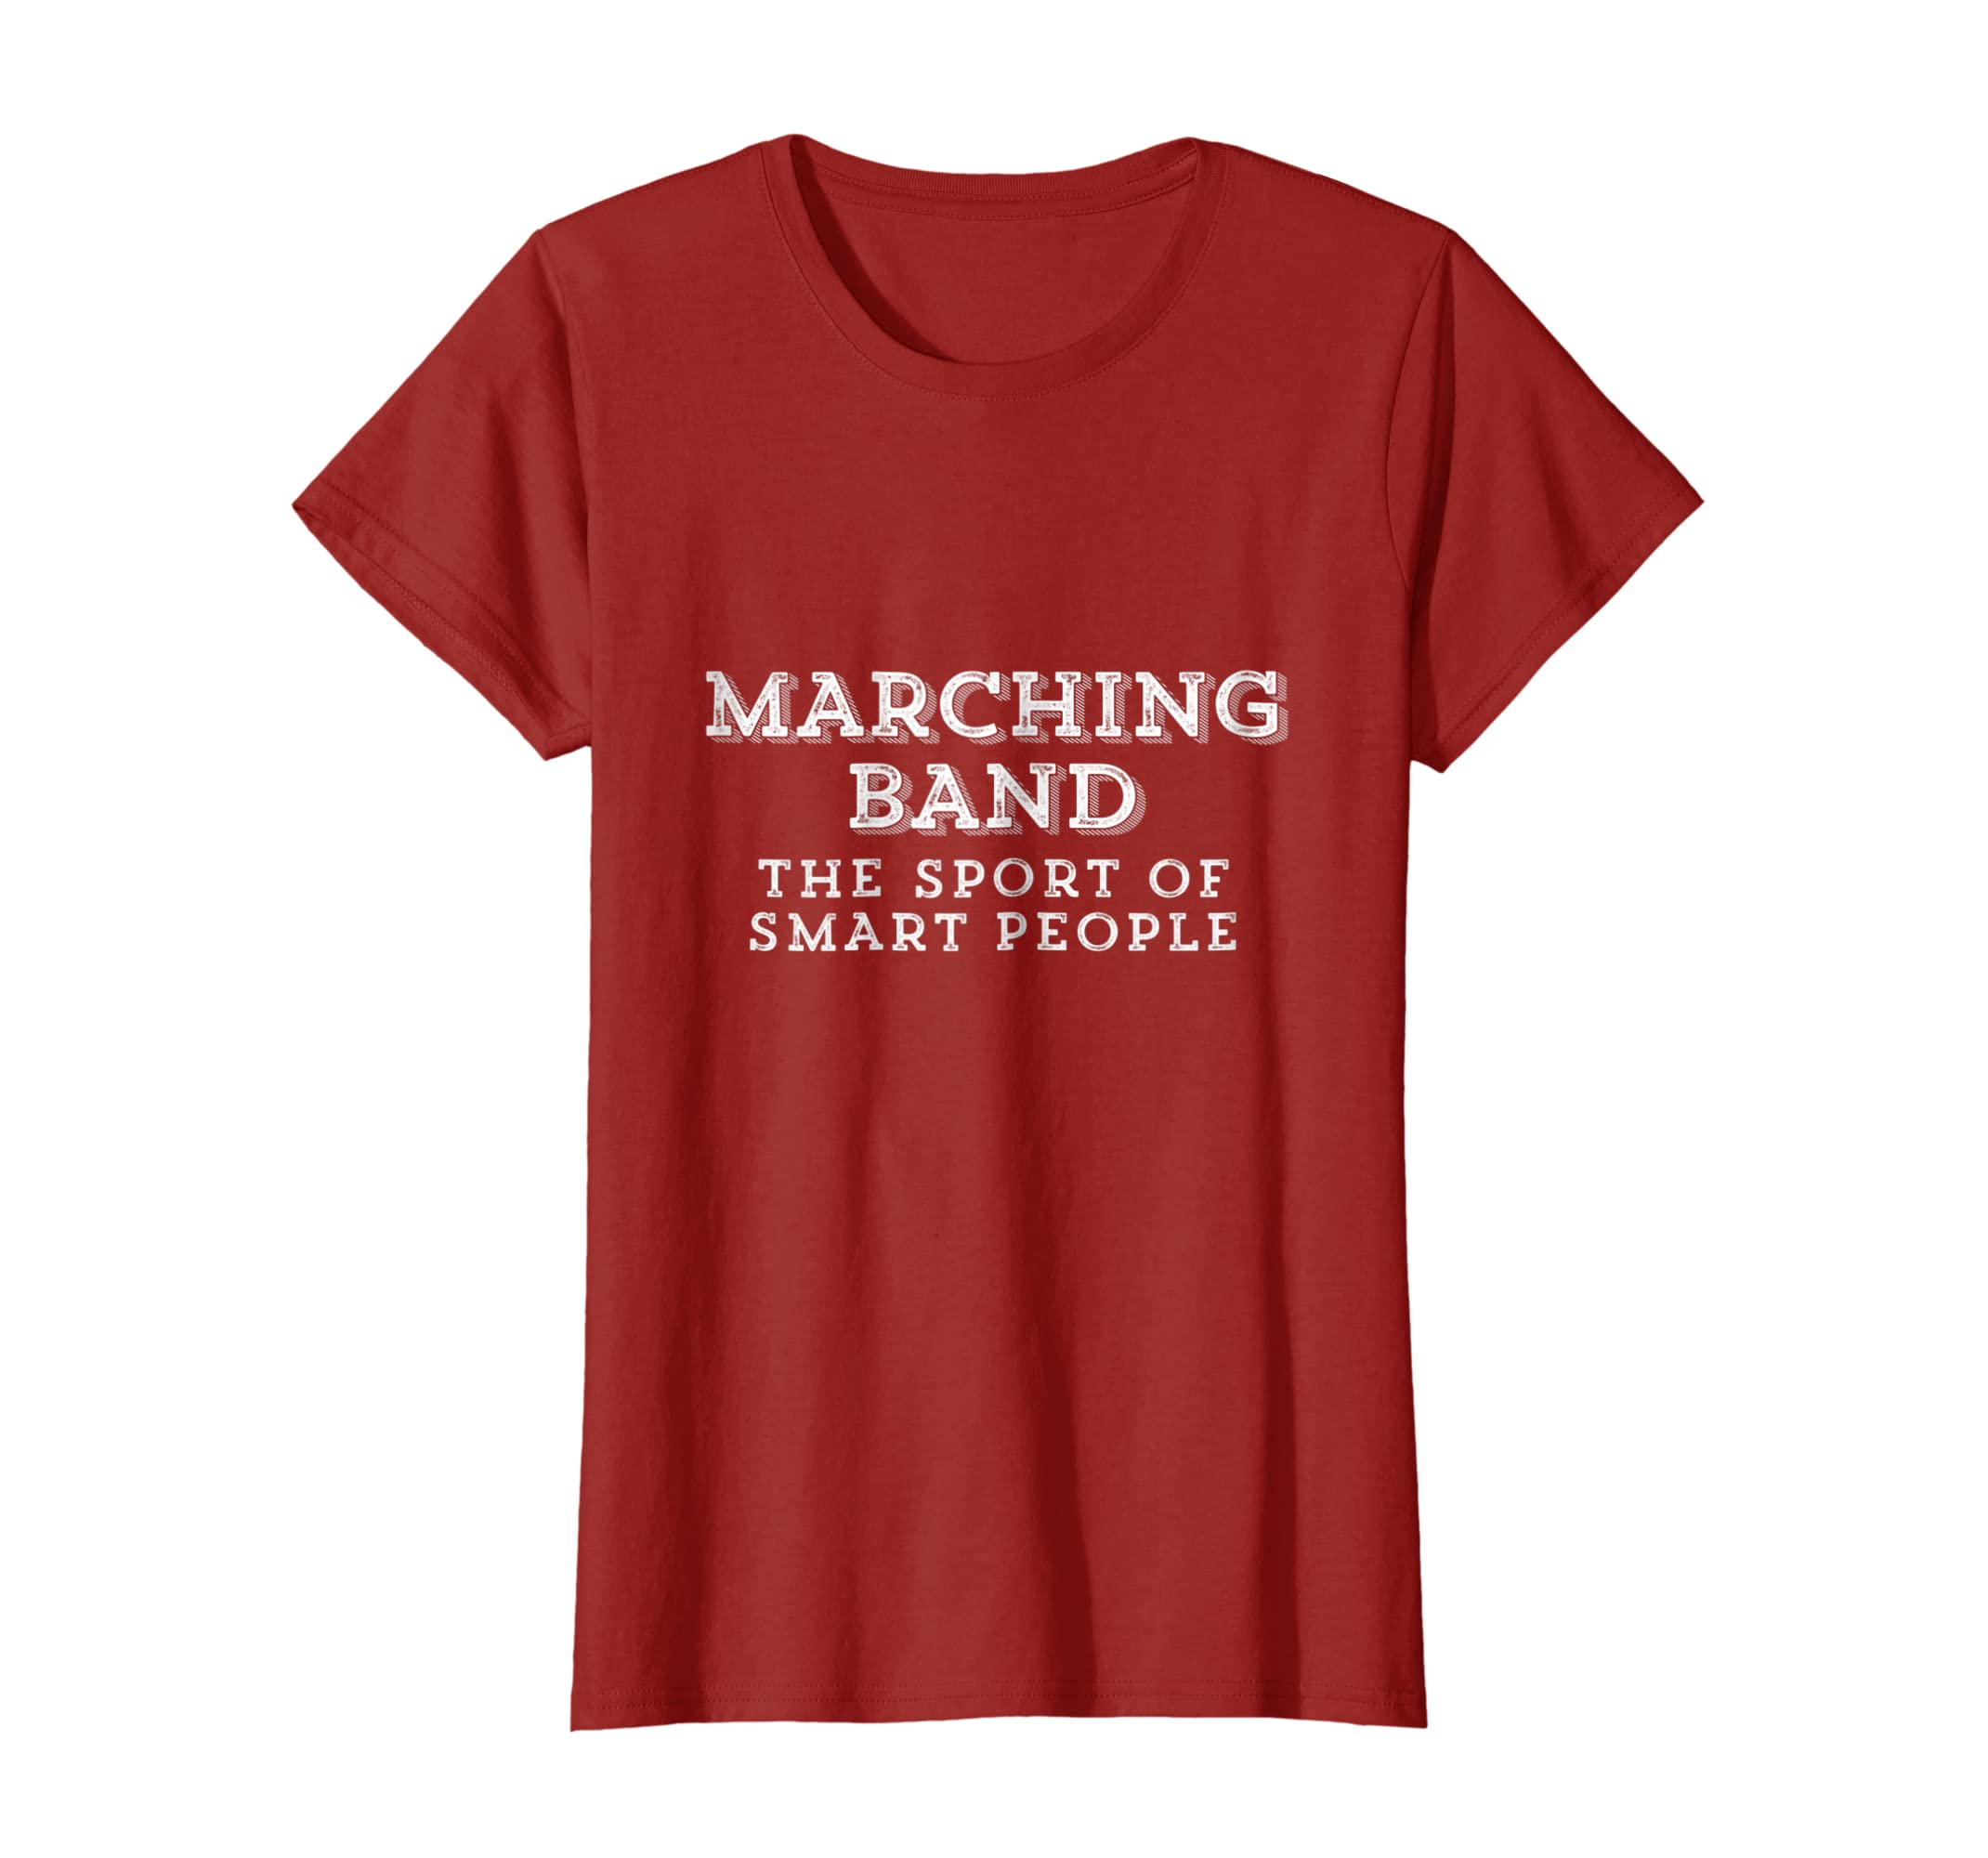 0f5a903c Marching Band T Shirt Ideas | Top Mode Depot